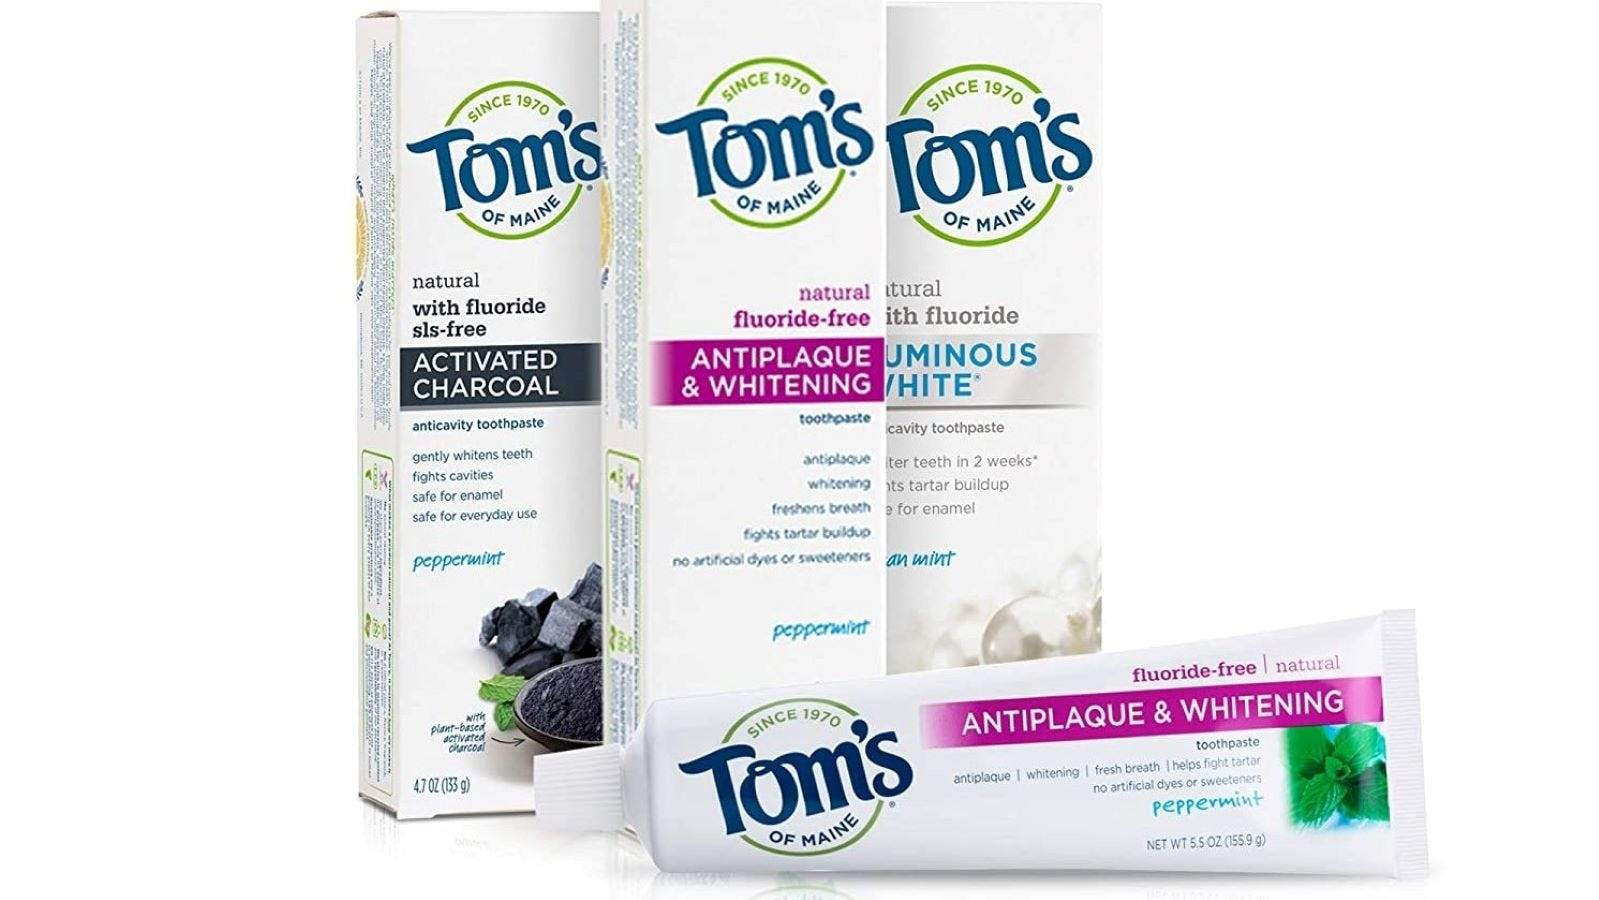 Three boxes of Tom's of Maine toothpaste.